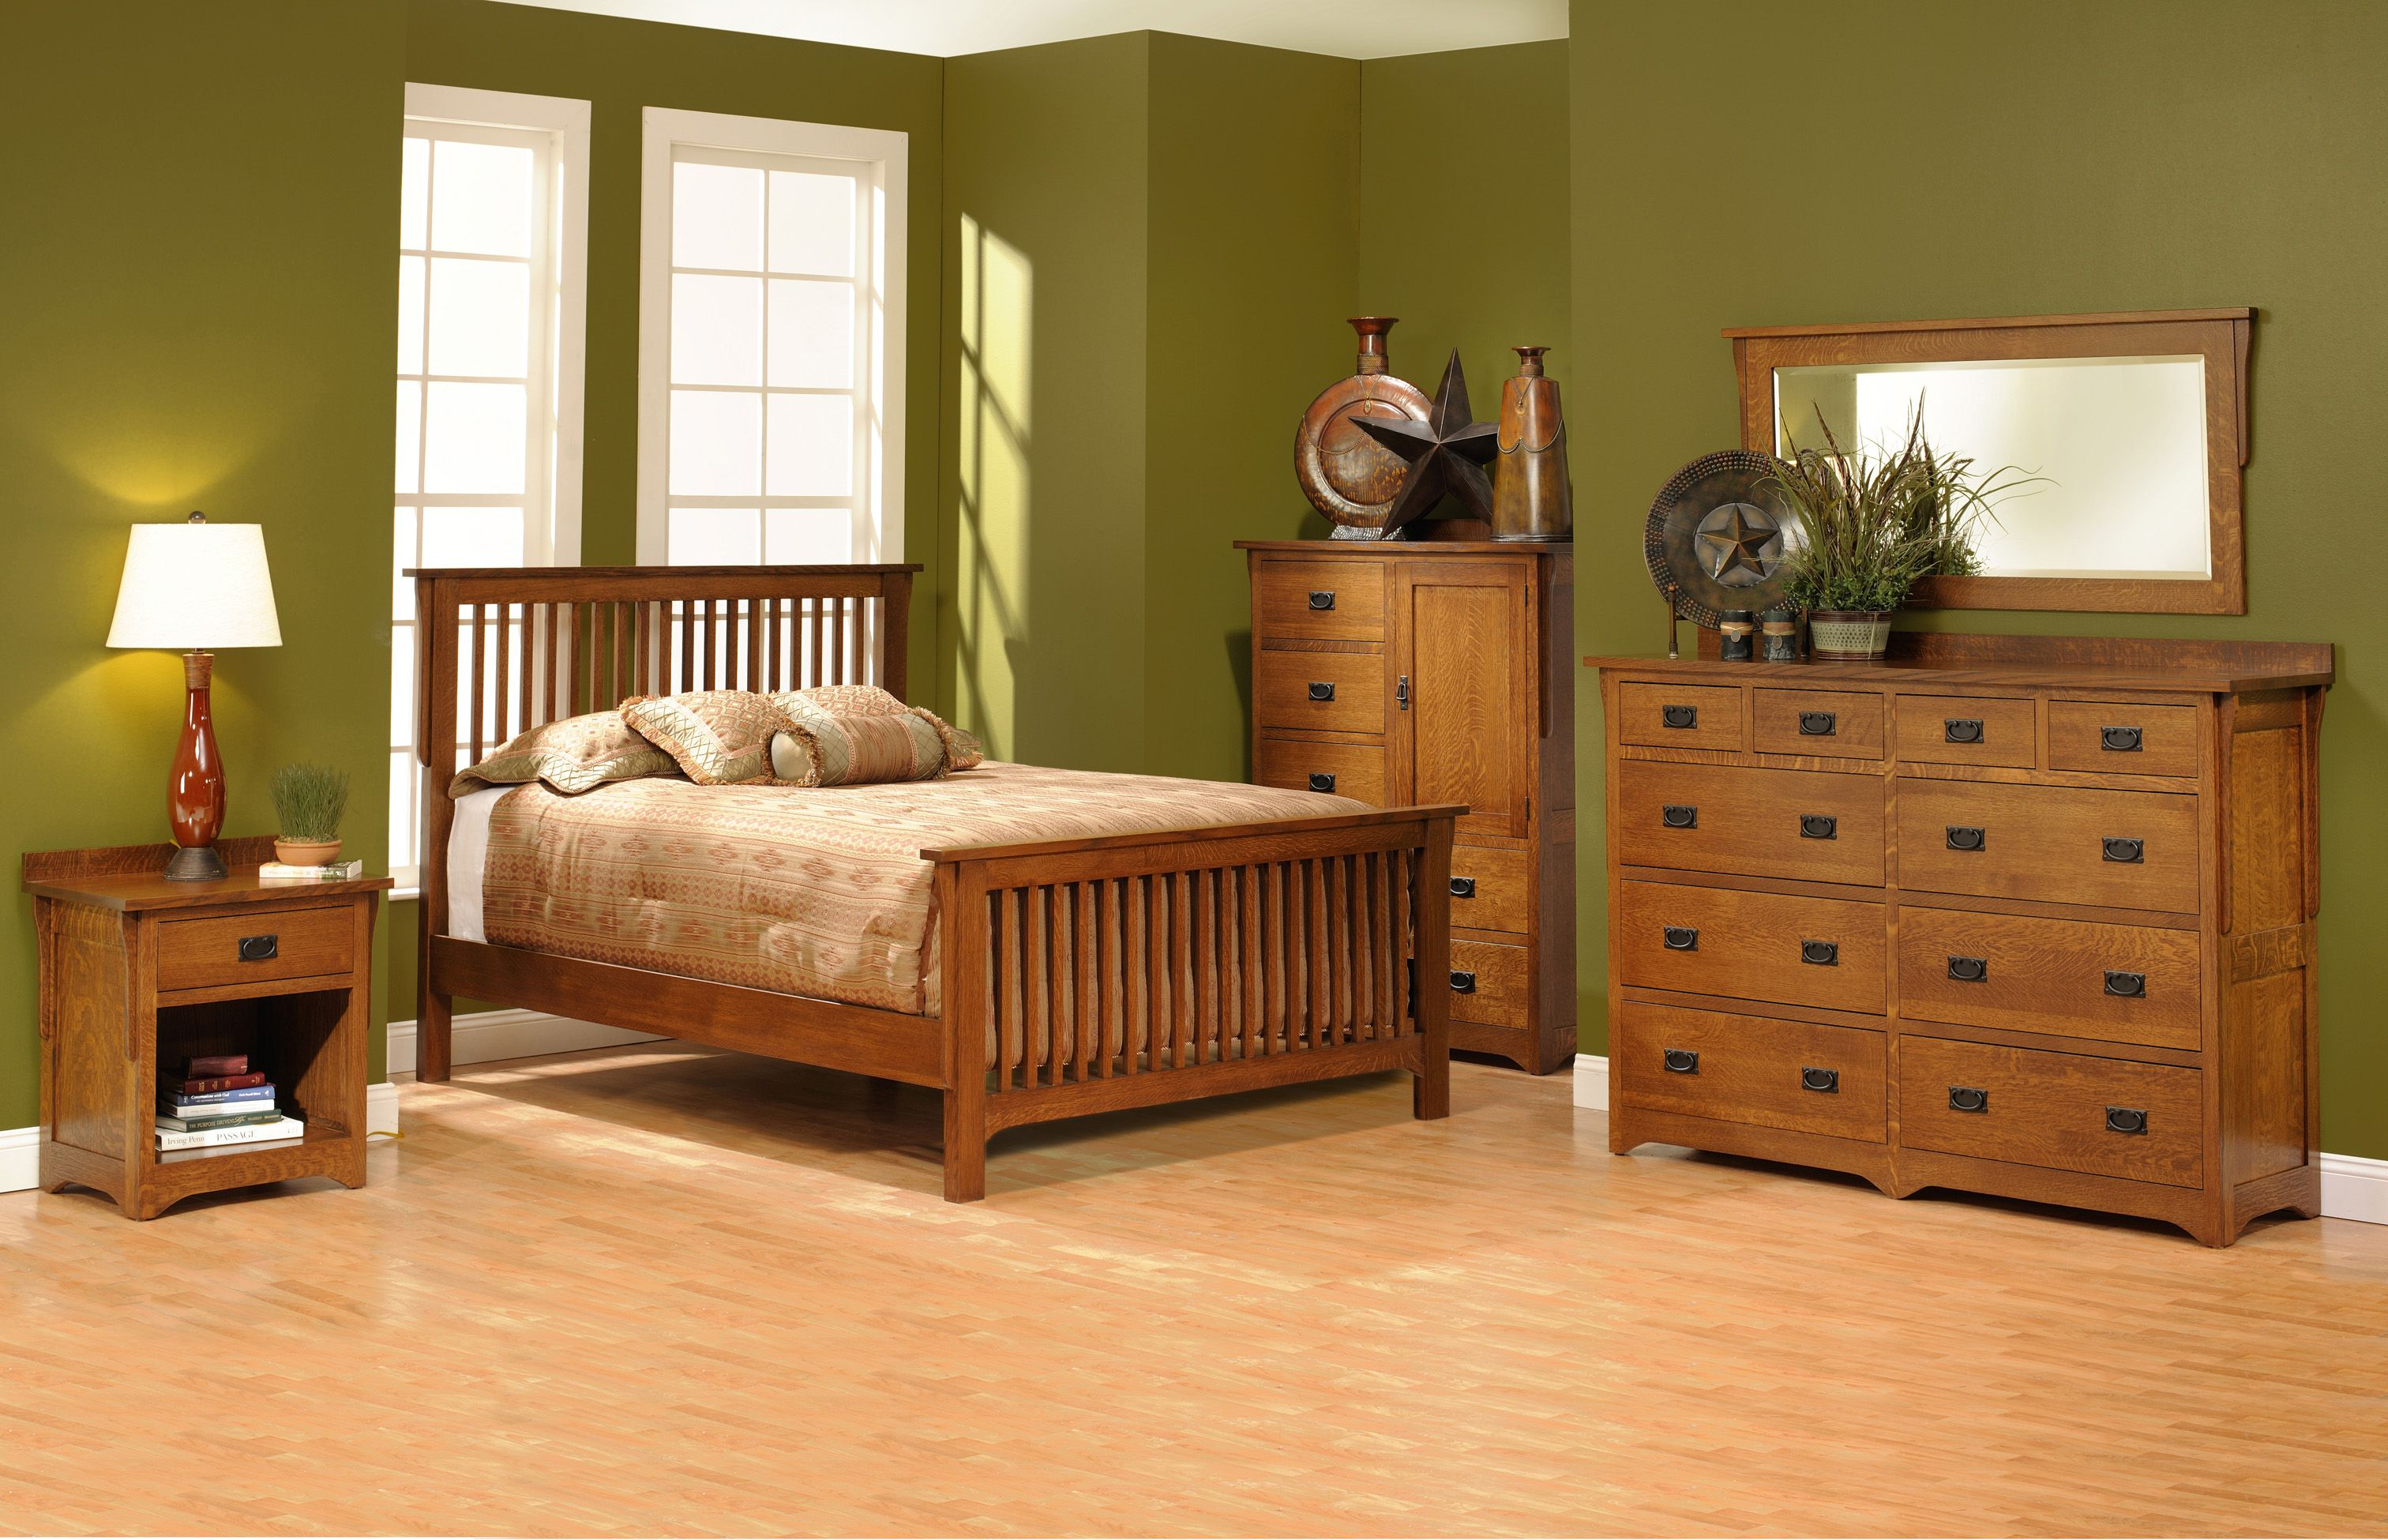 Bedroom Furniture Styles san juan mission style solid oak mission bedroom set | amish